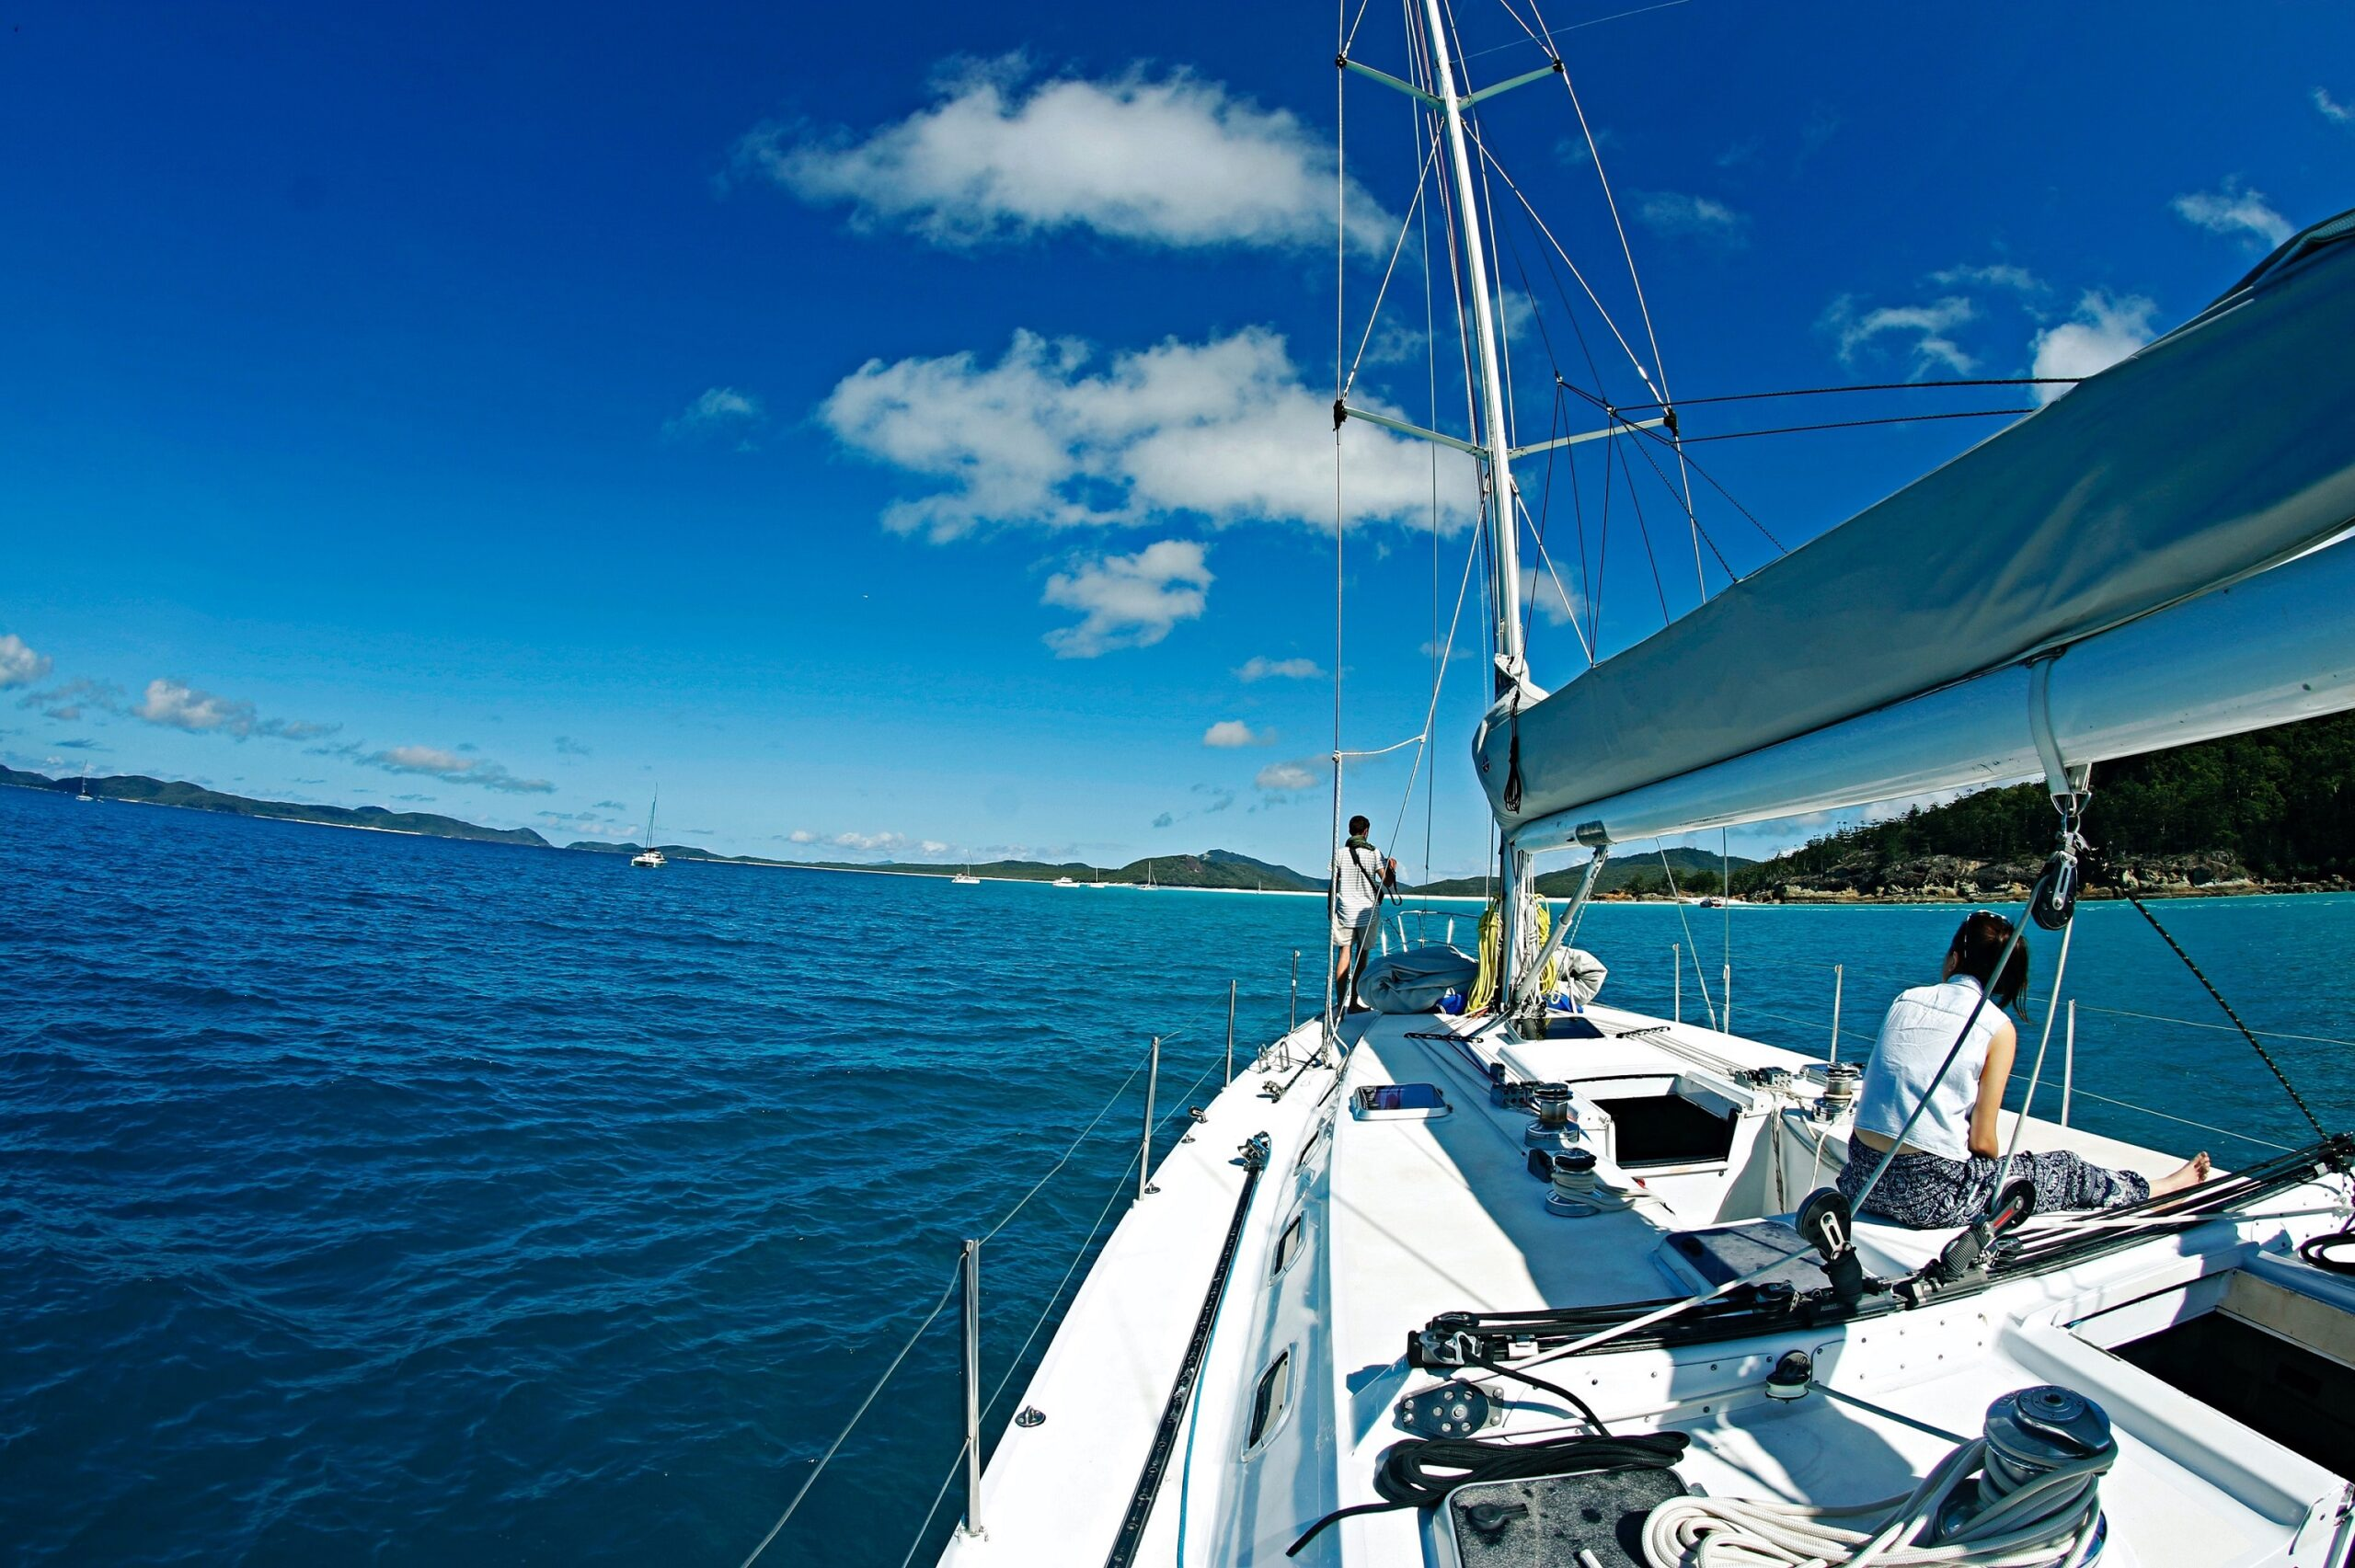 3 Things You Need To Know About Boat Insurance